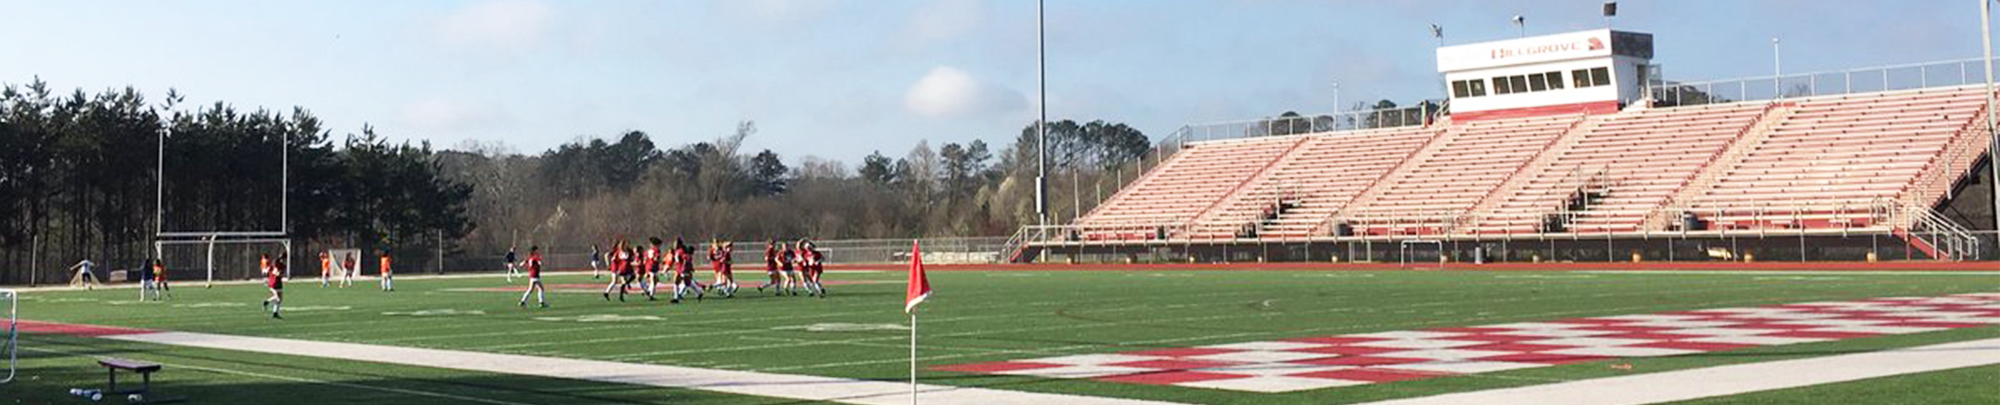 3-View of Hillgrove High School football field during a game